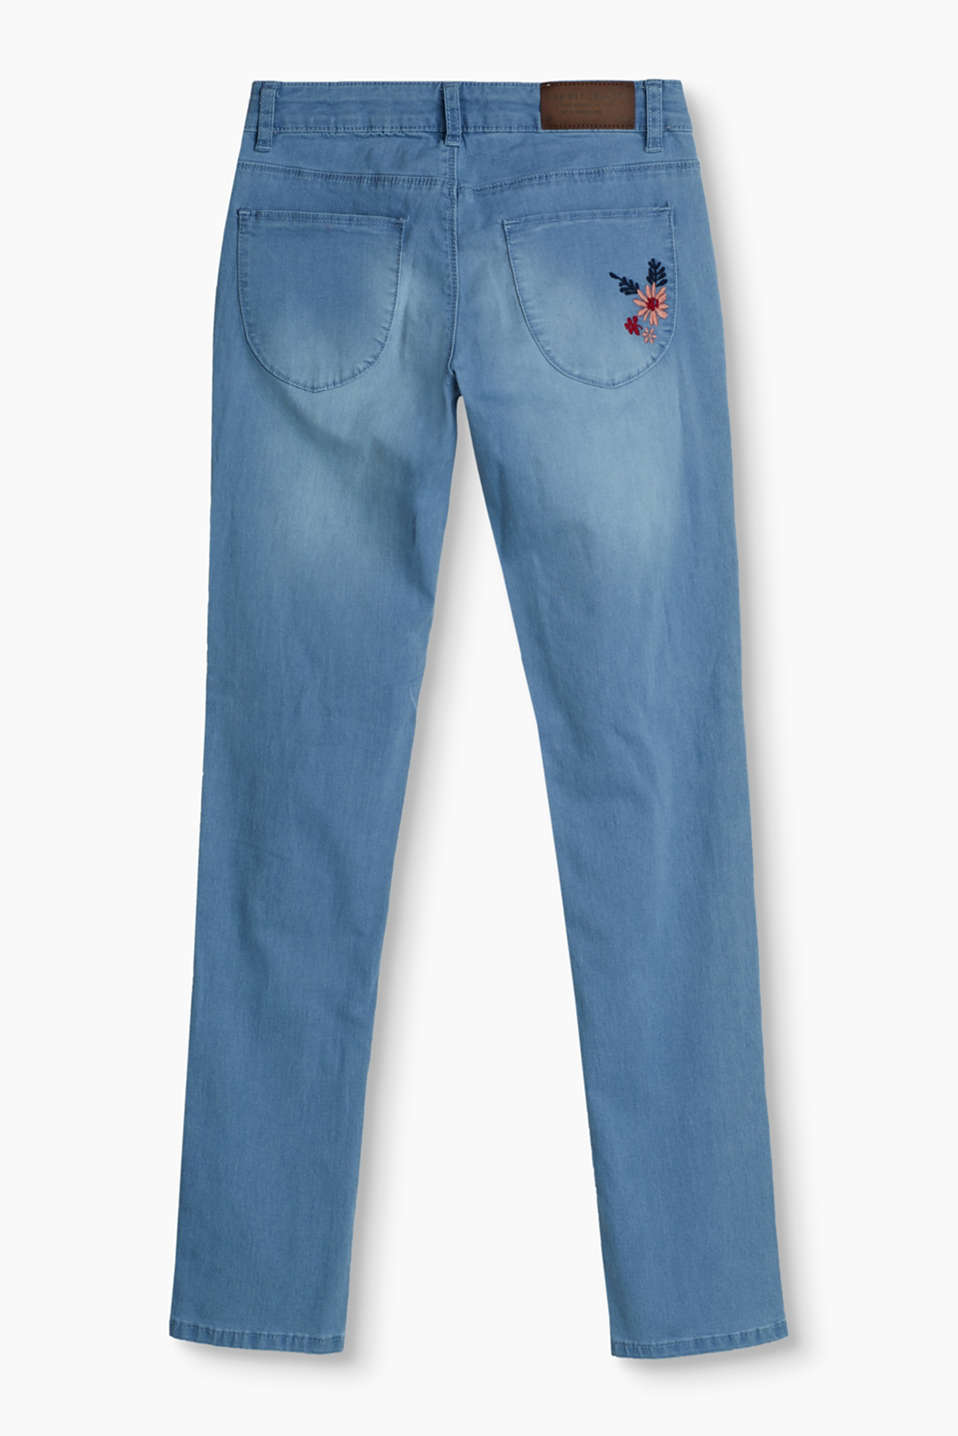 Stretch jeans with floral embroidery